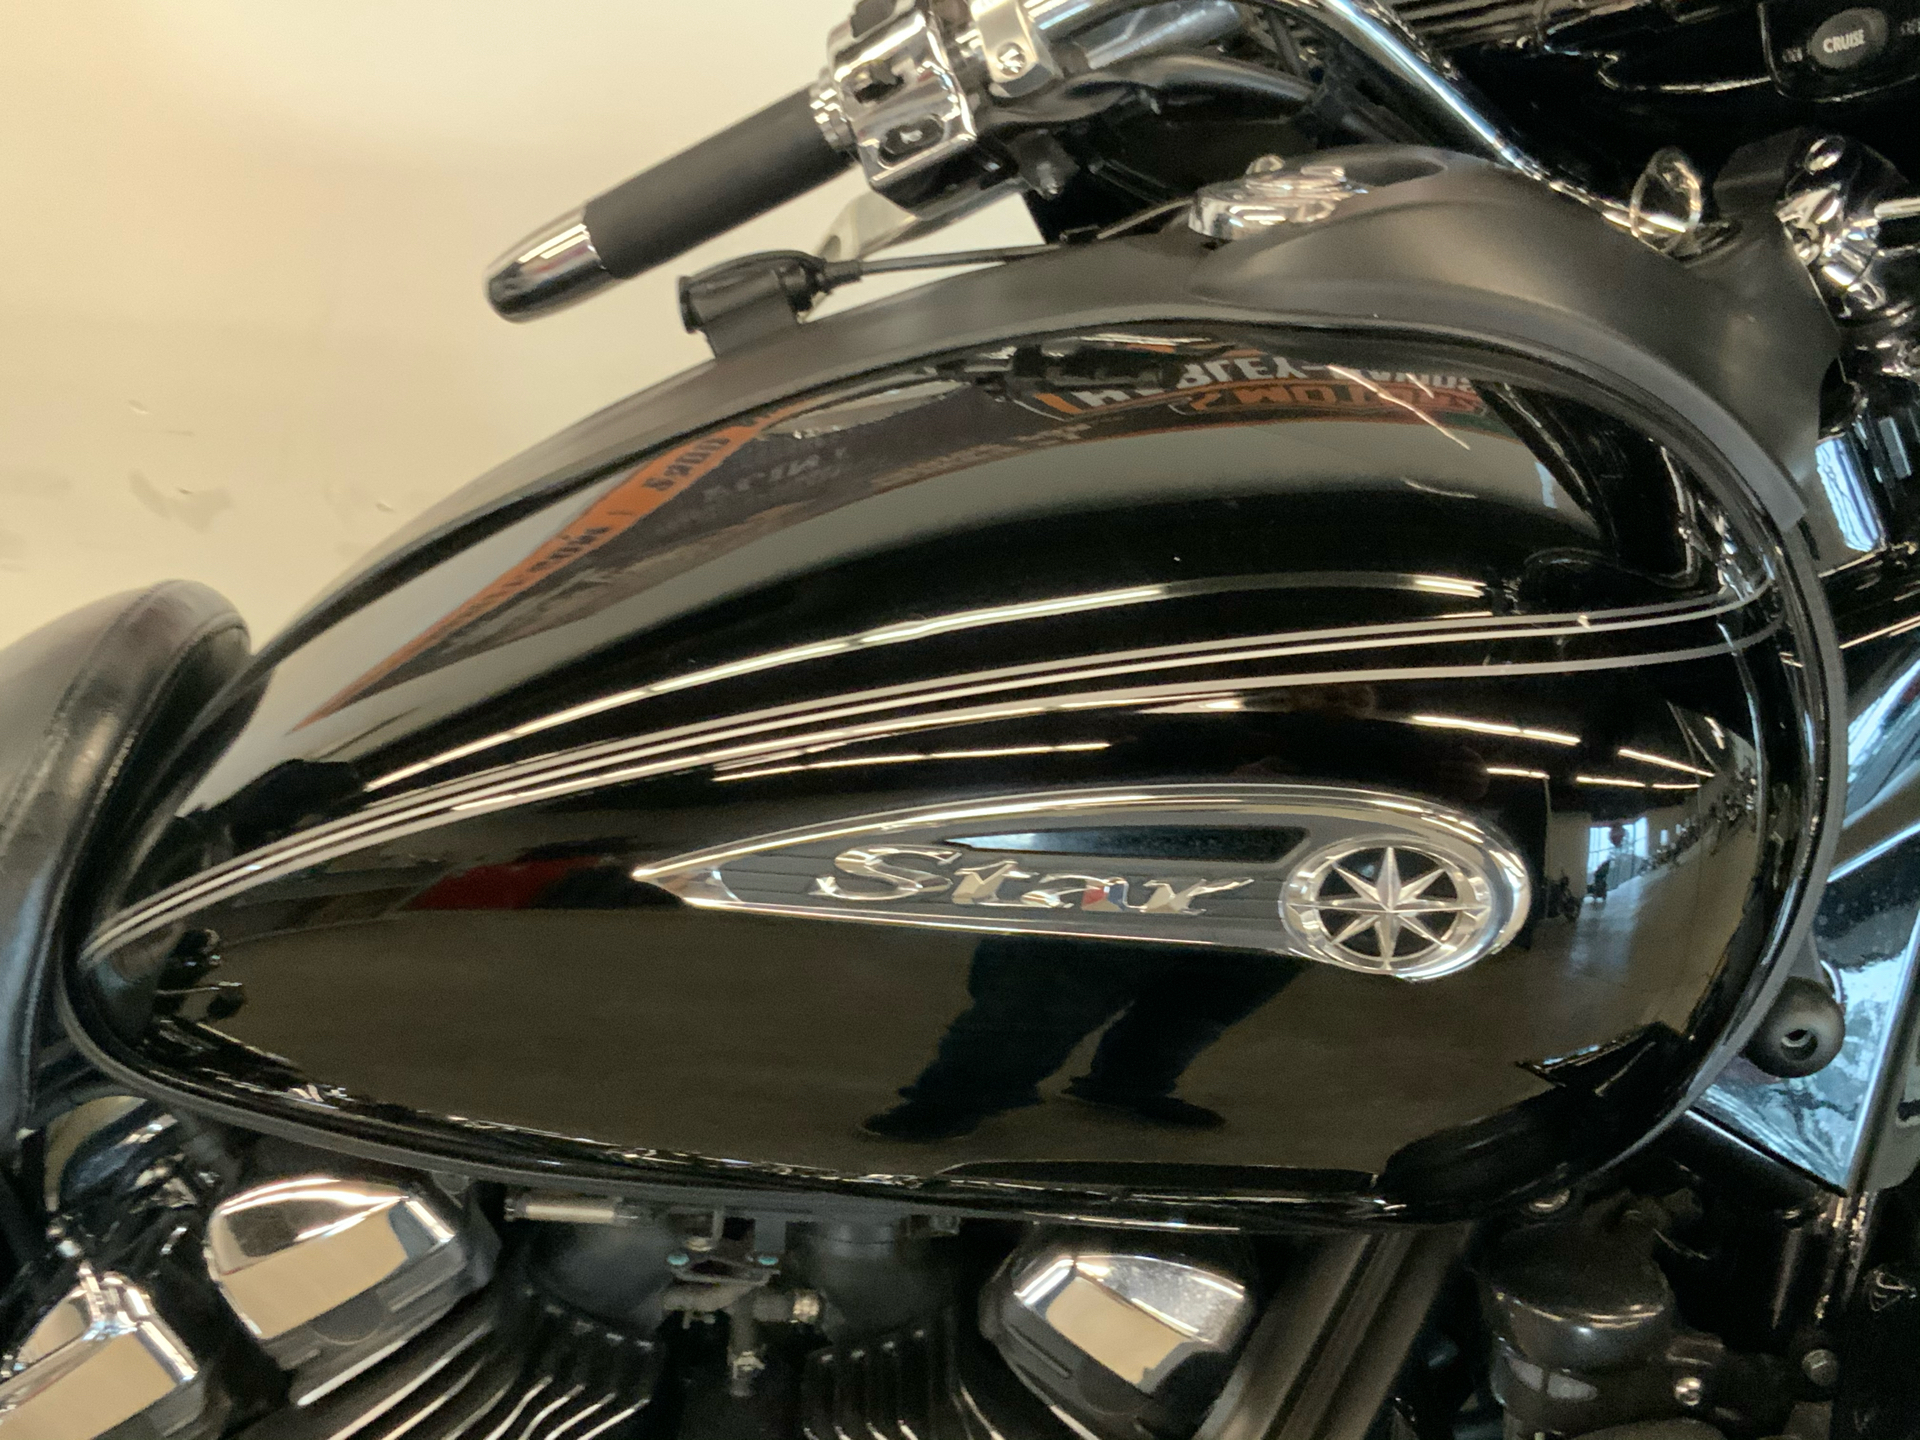 2012 Yamaha Royal Star Venture S in Flint, Michigan - Photo 14